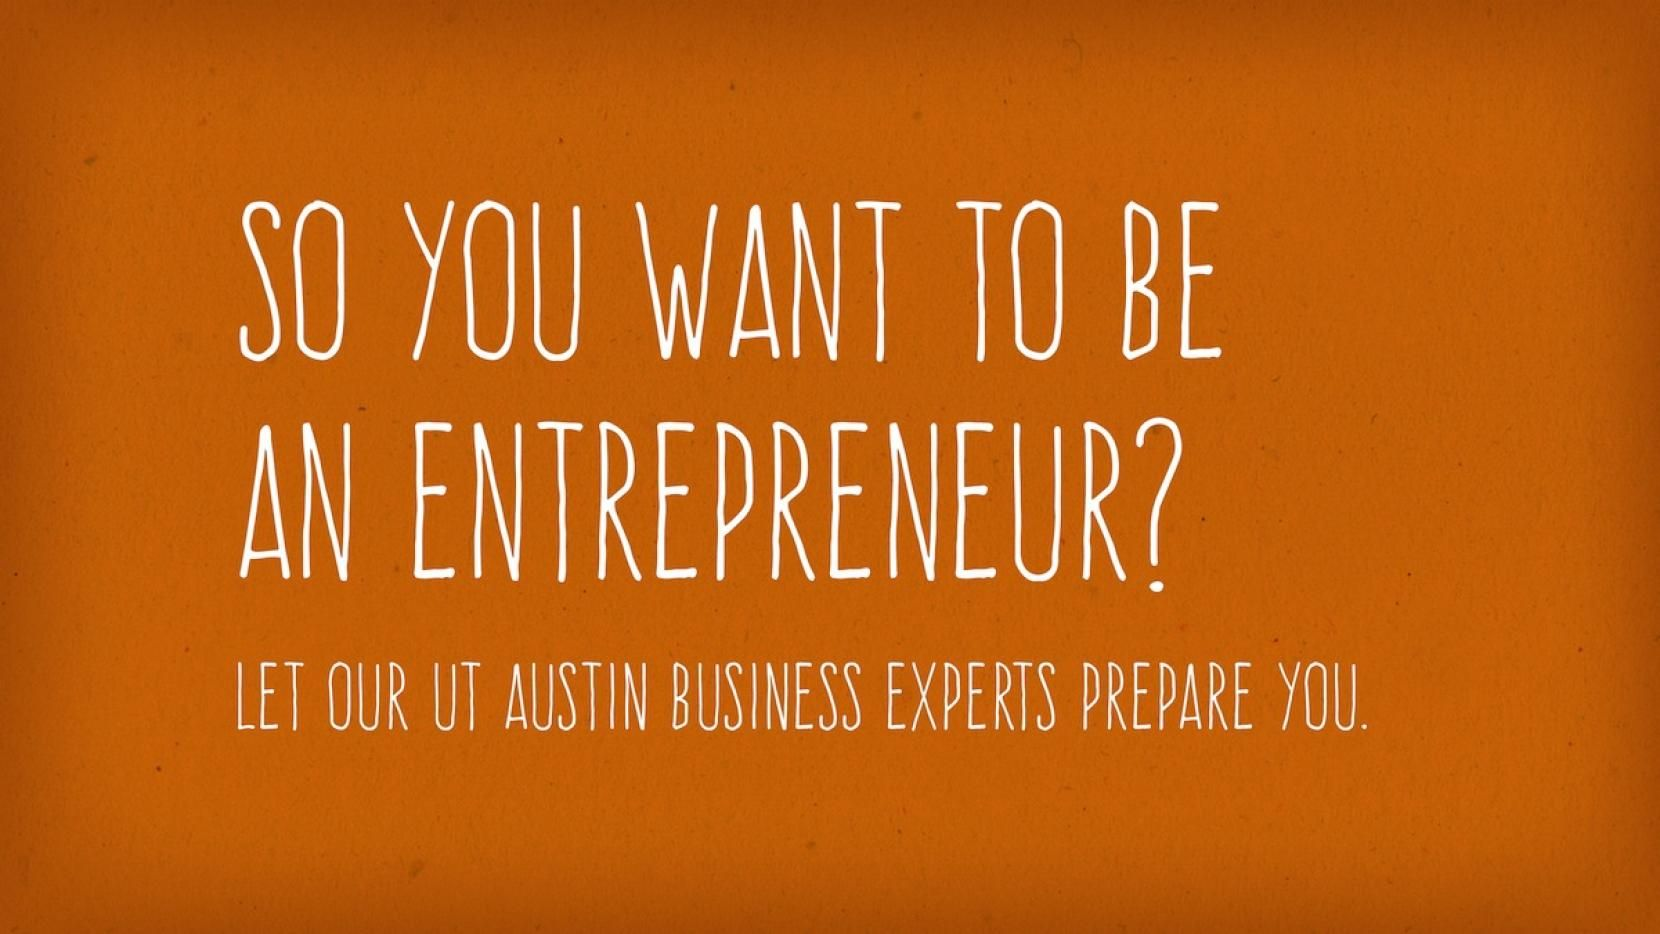 Mccombs Austin Is The Perfect Combination For Me To Achieve My Career Goals Austin Businesses Career Goals Ut Austin